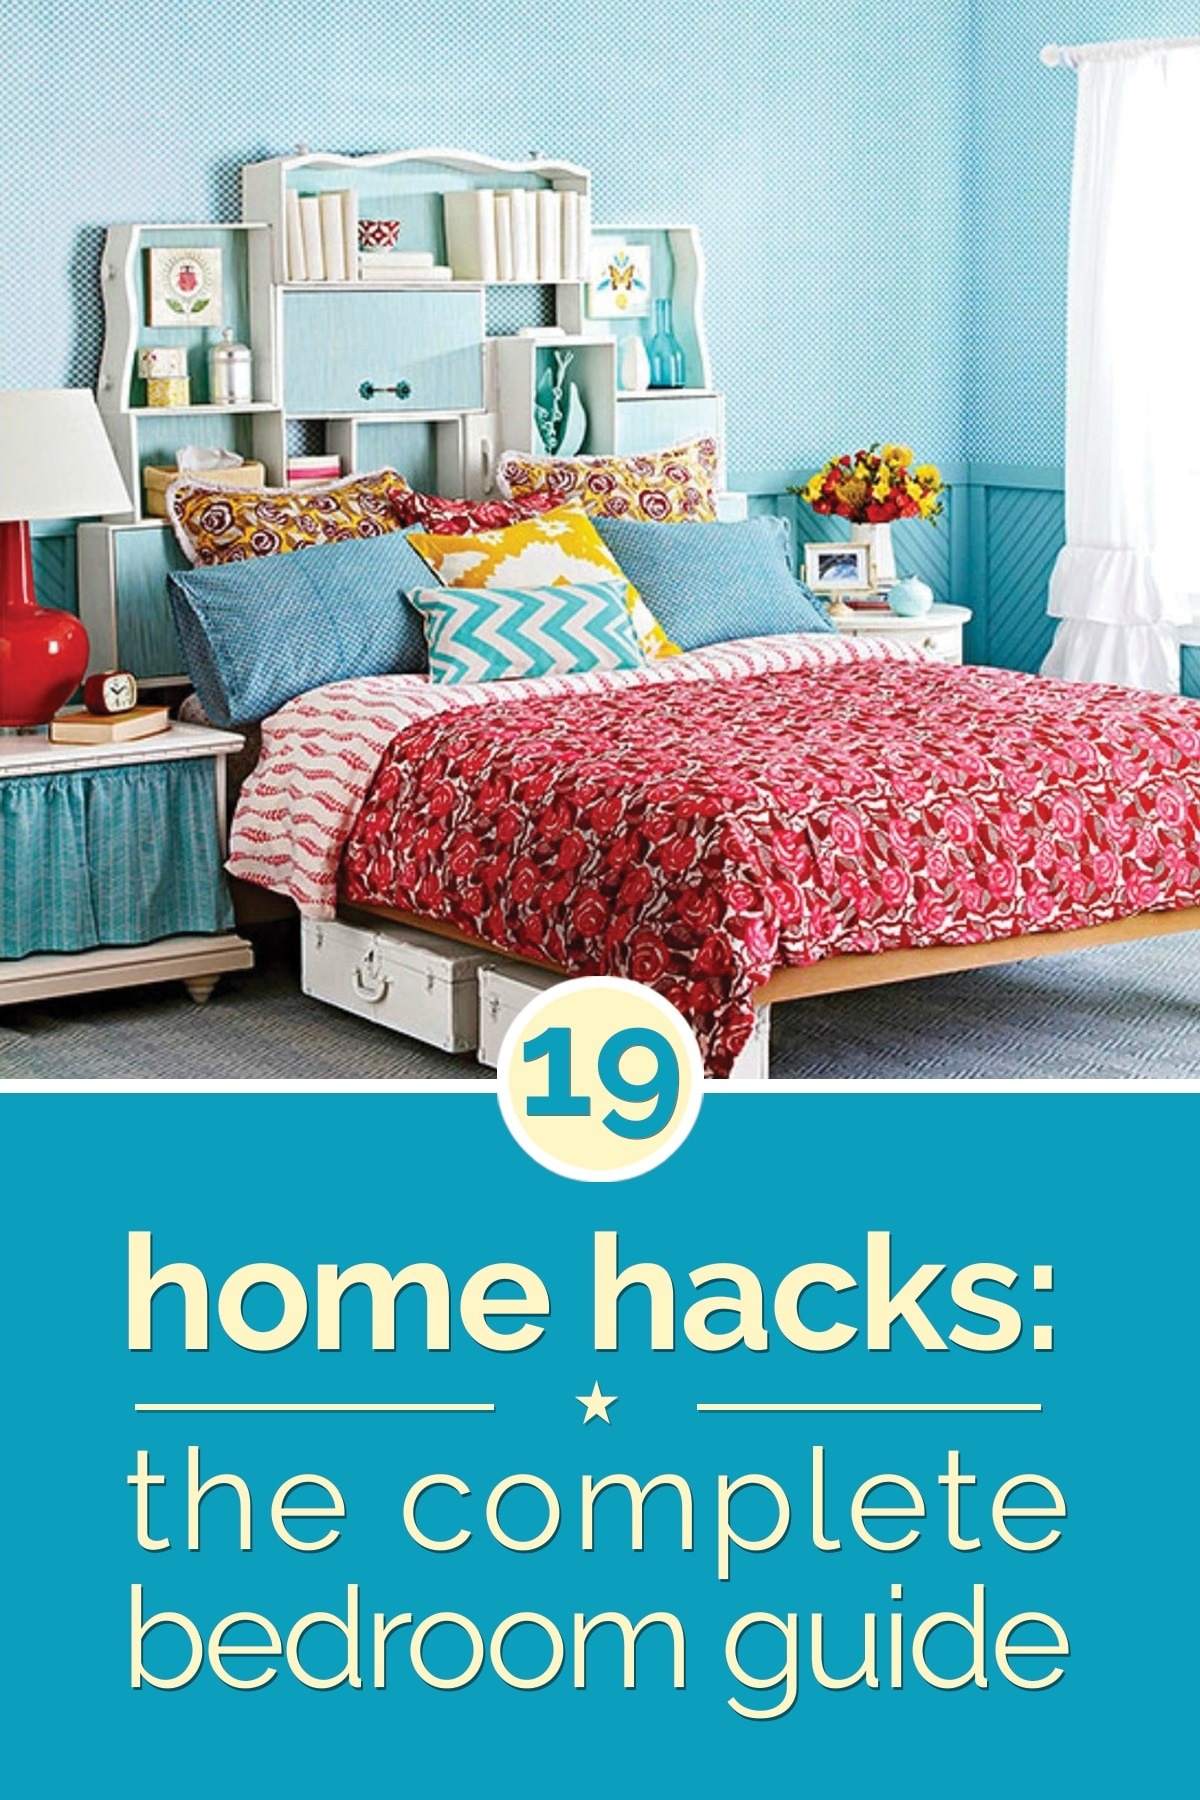 Diy home hacks bedroomHome Hacks  19 Tips to Organize Your Bedroom   thegoodstuff. Diy Organizing Ideas For Bedrooms. Home Design Ideas